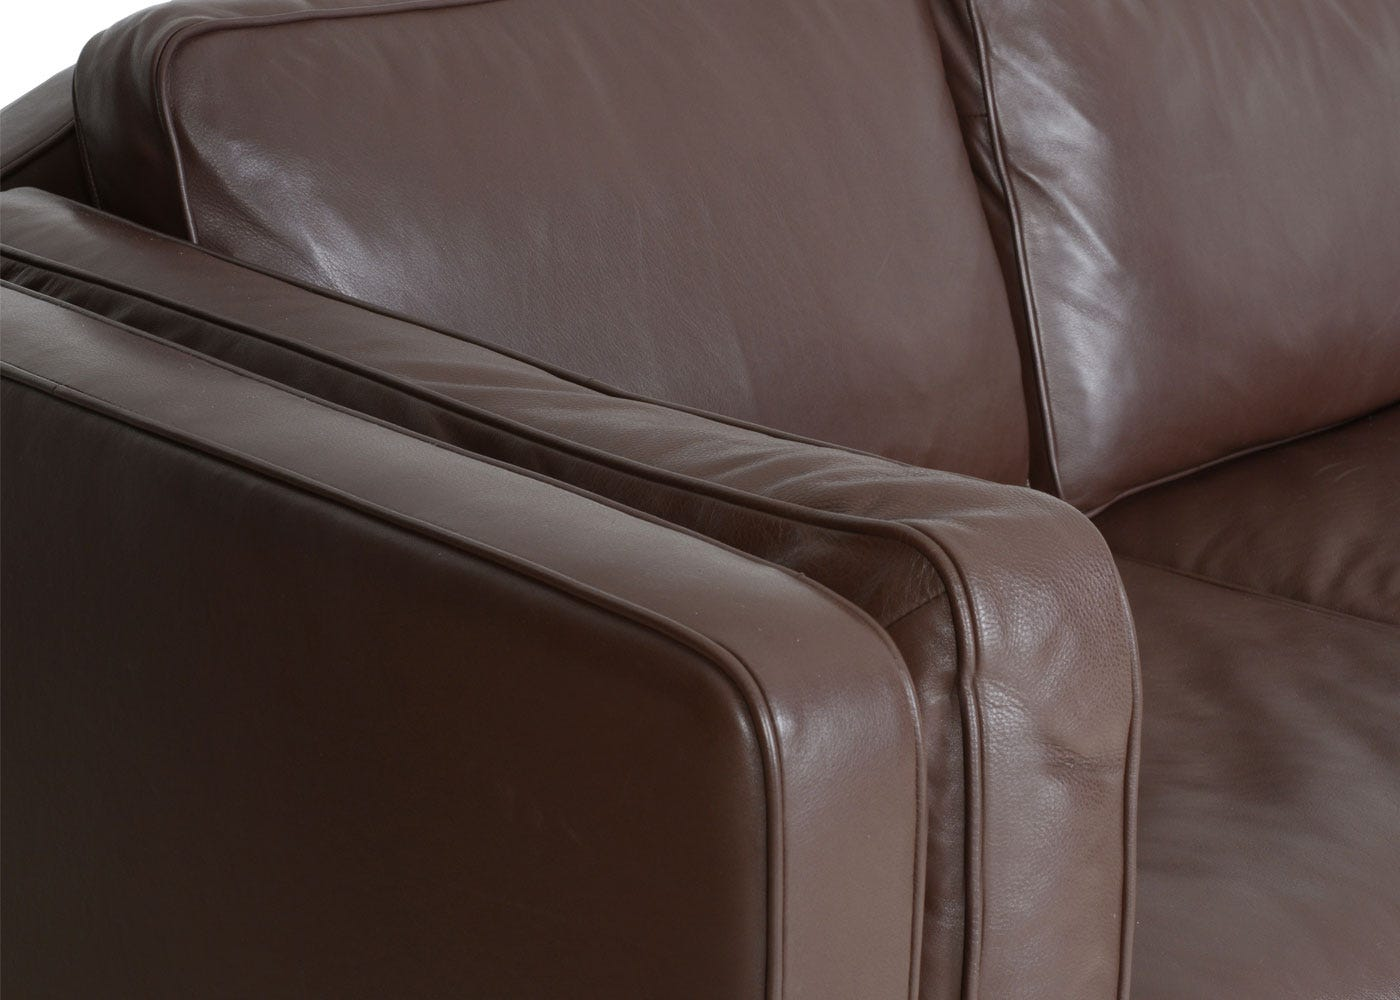 Chill 4 Seater Sofa in Soft Leather Suede Chocolate 7182 - material will age over time to create a unique patina